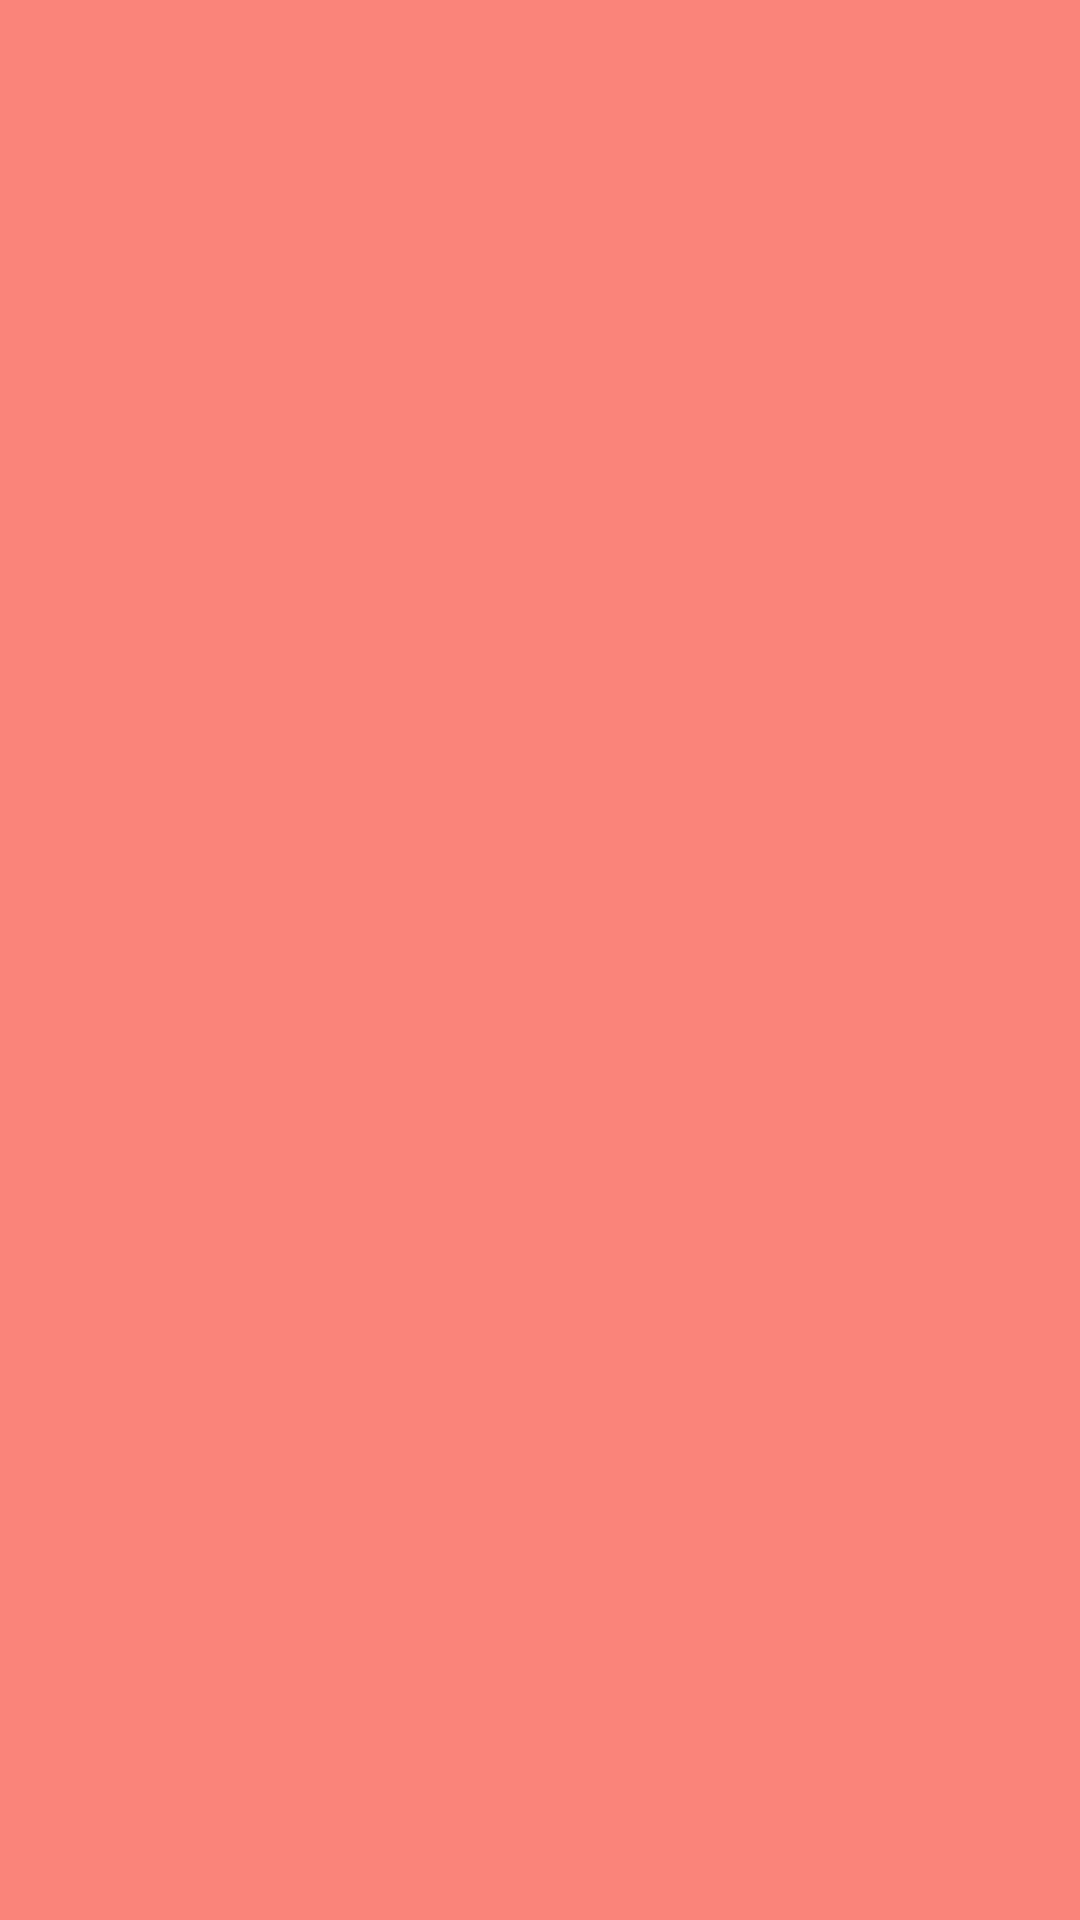 1080x1920 Tea Rose Orange Solid Color Background